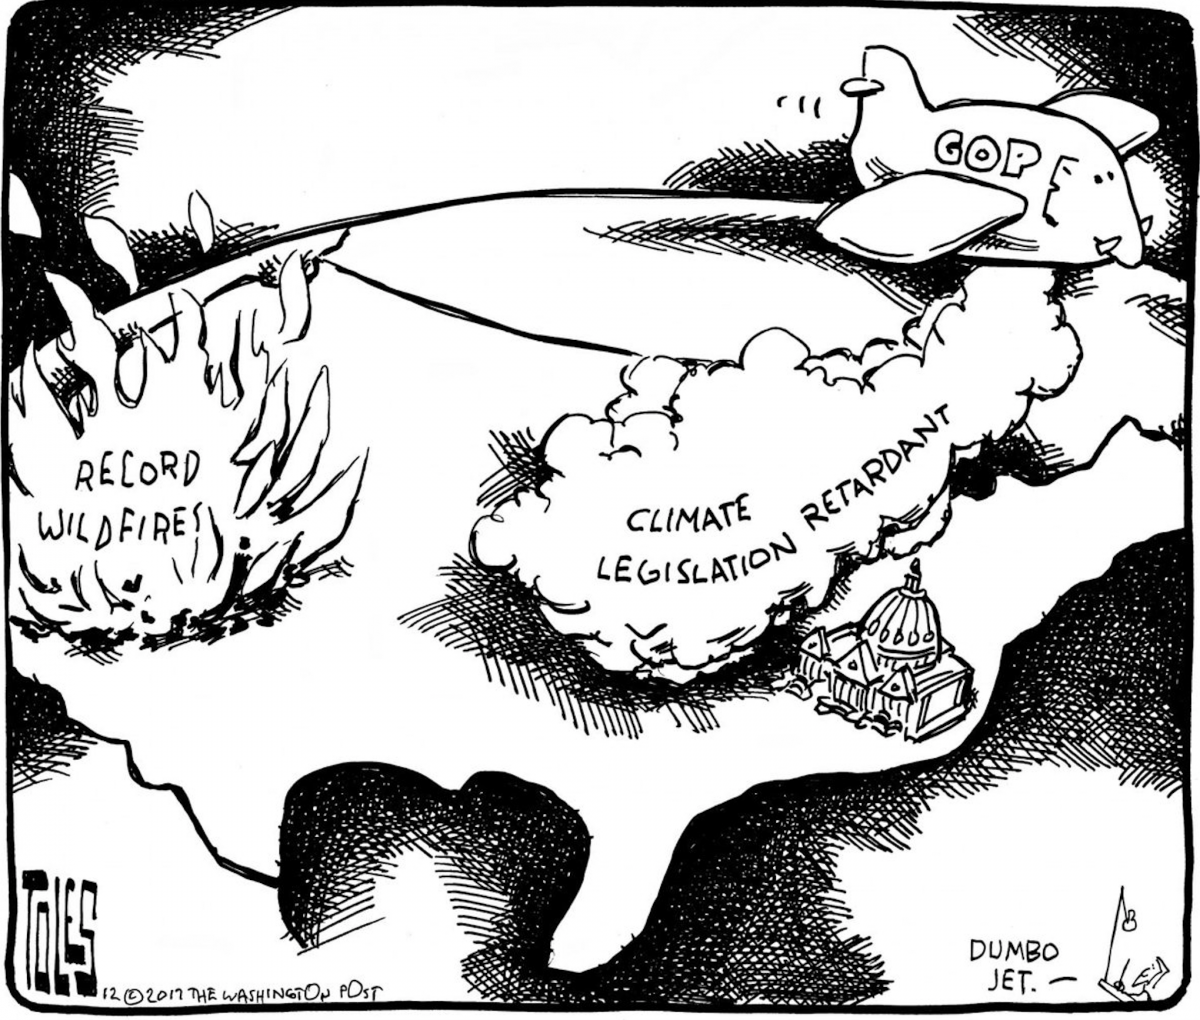 Tom Toles wildfires vs climate change denial